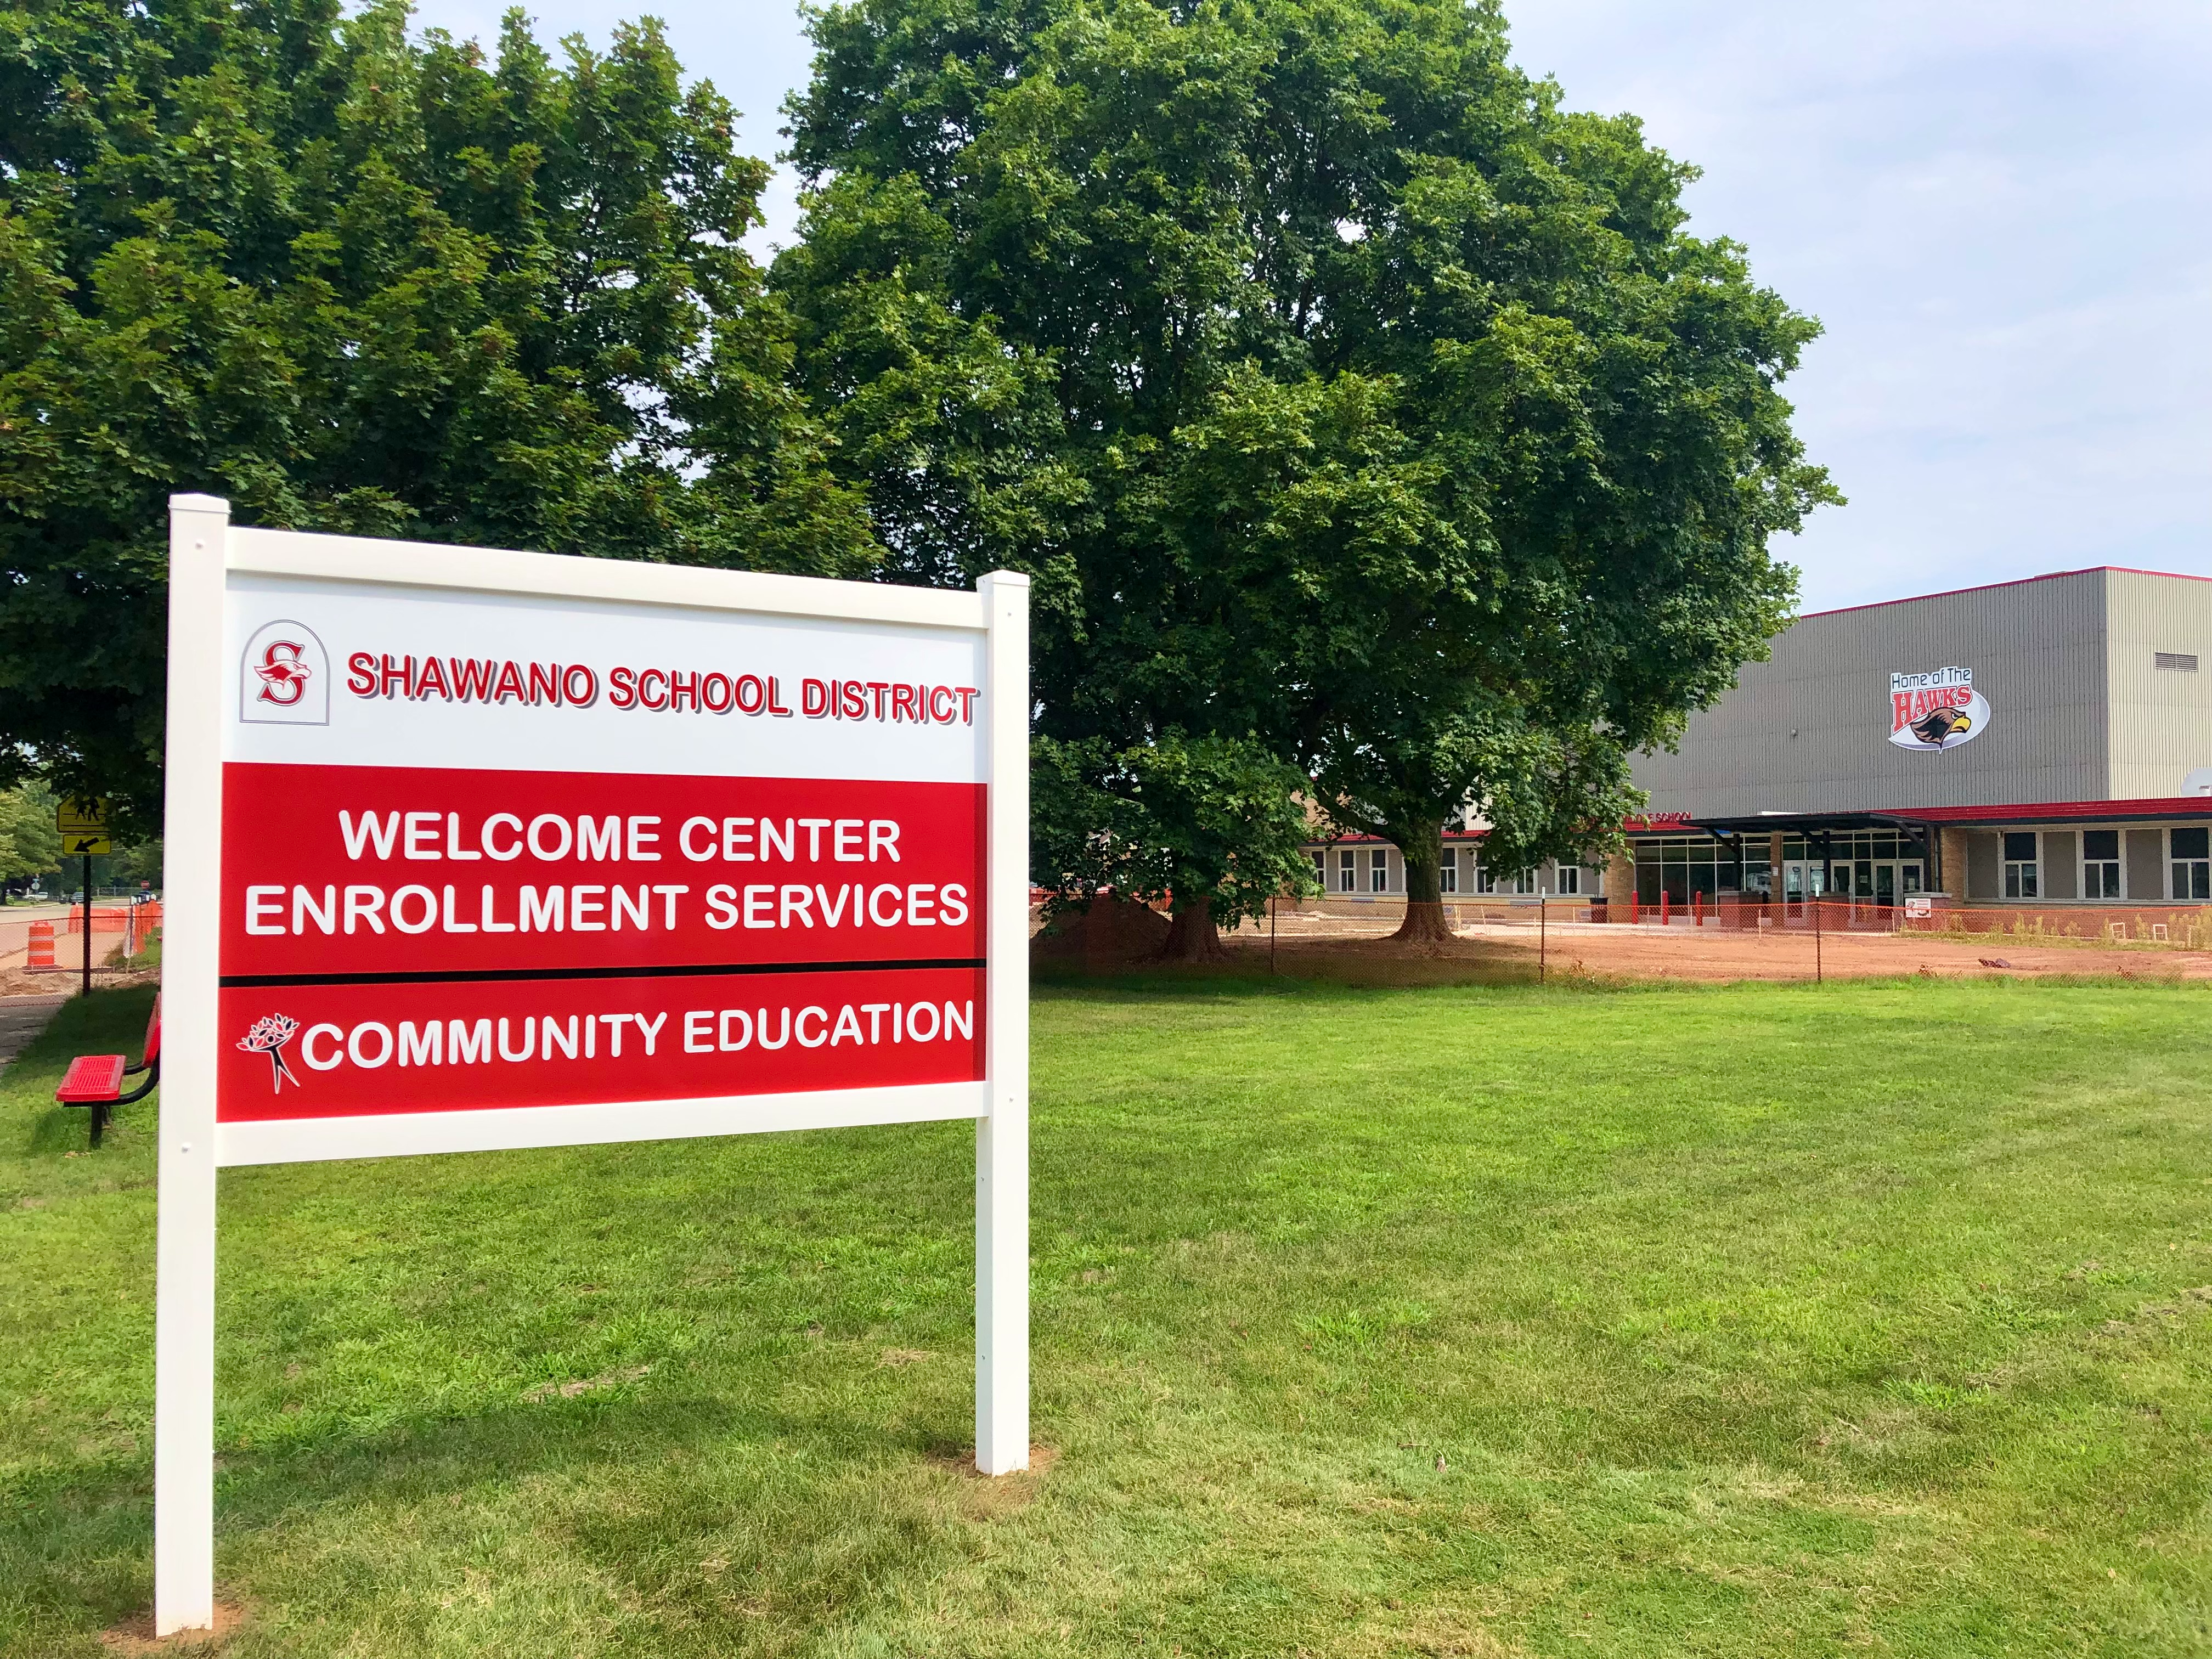 Community Education and Welcome Center Entrance